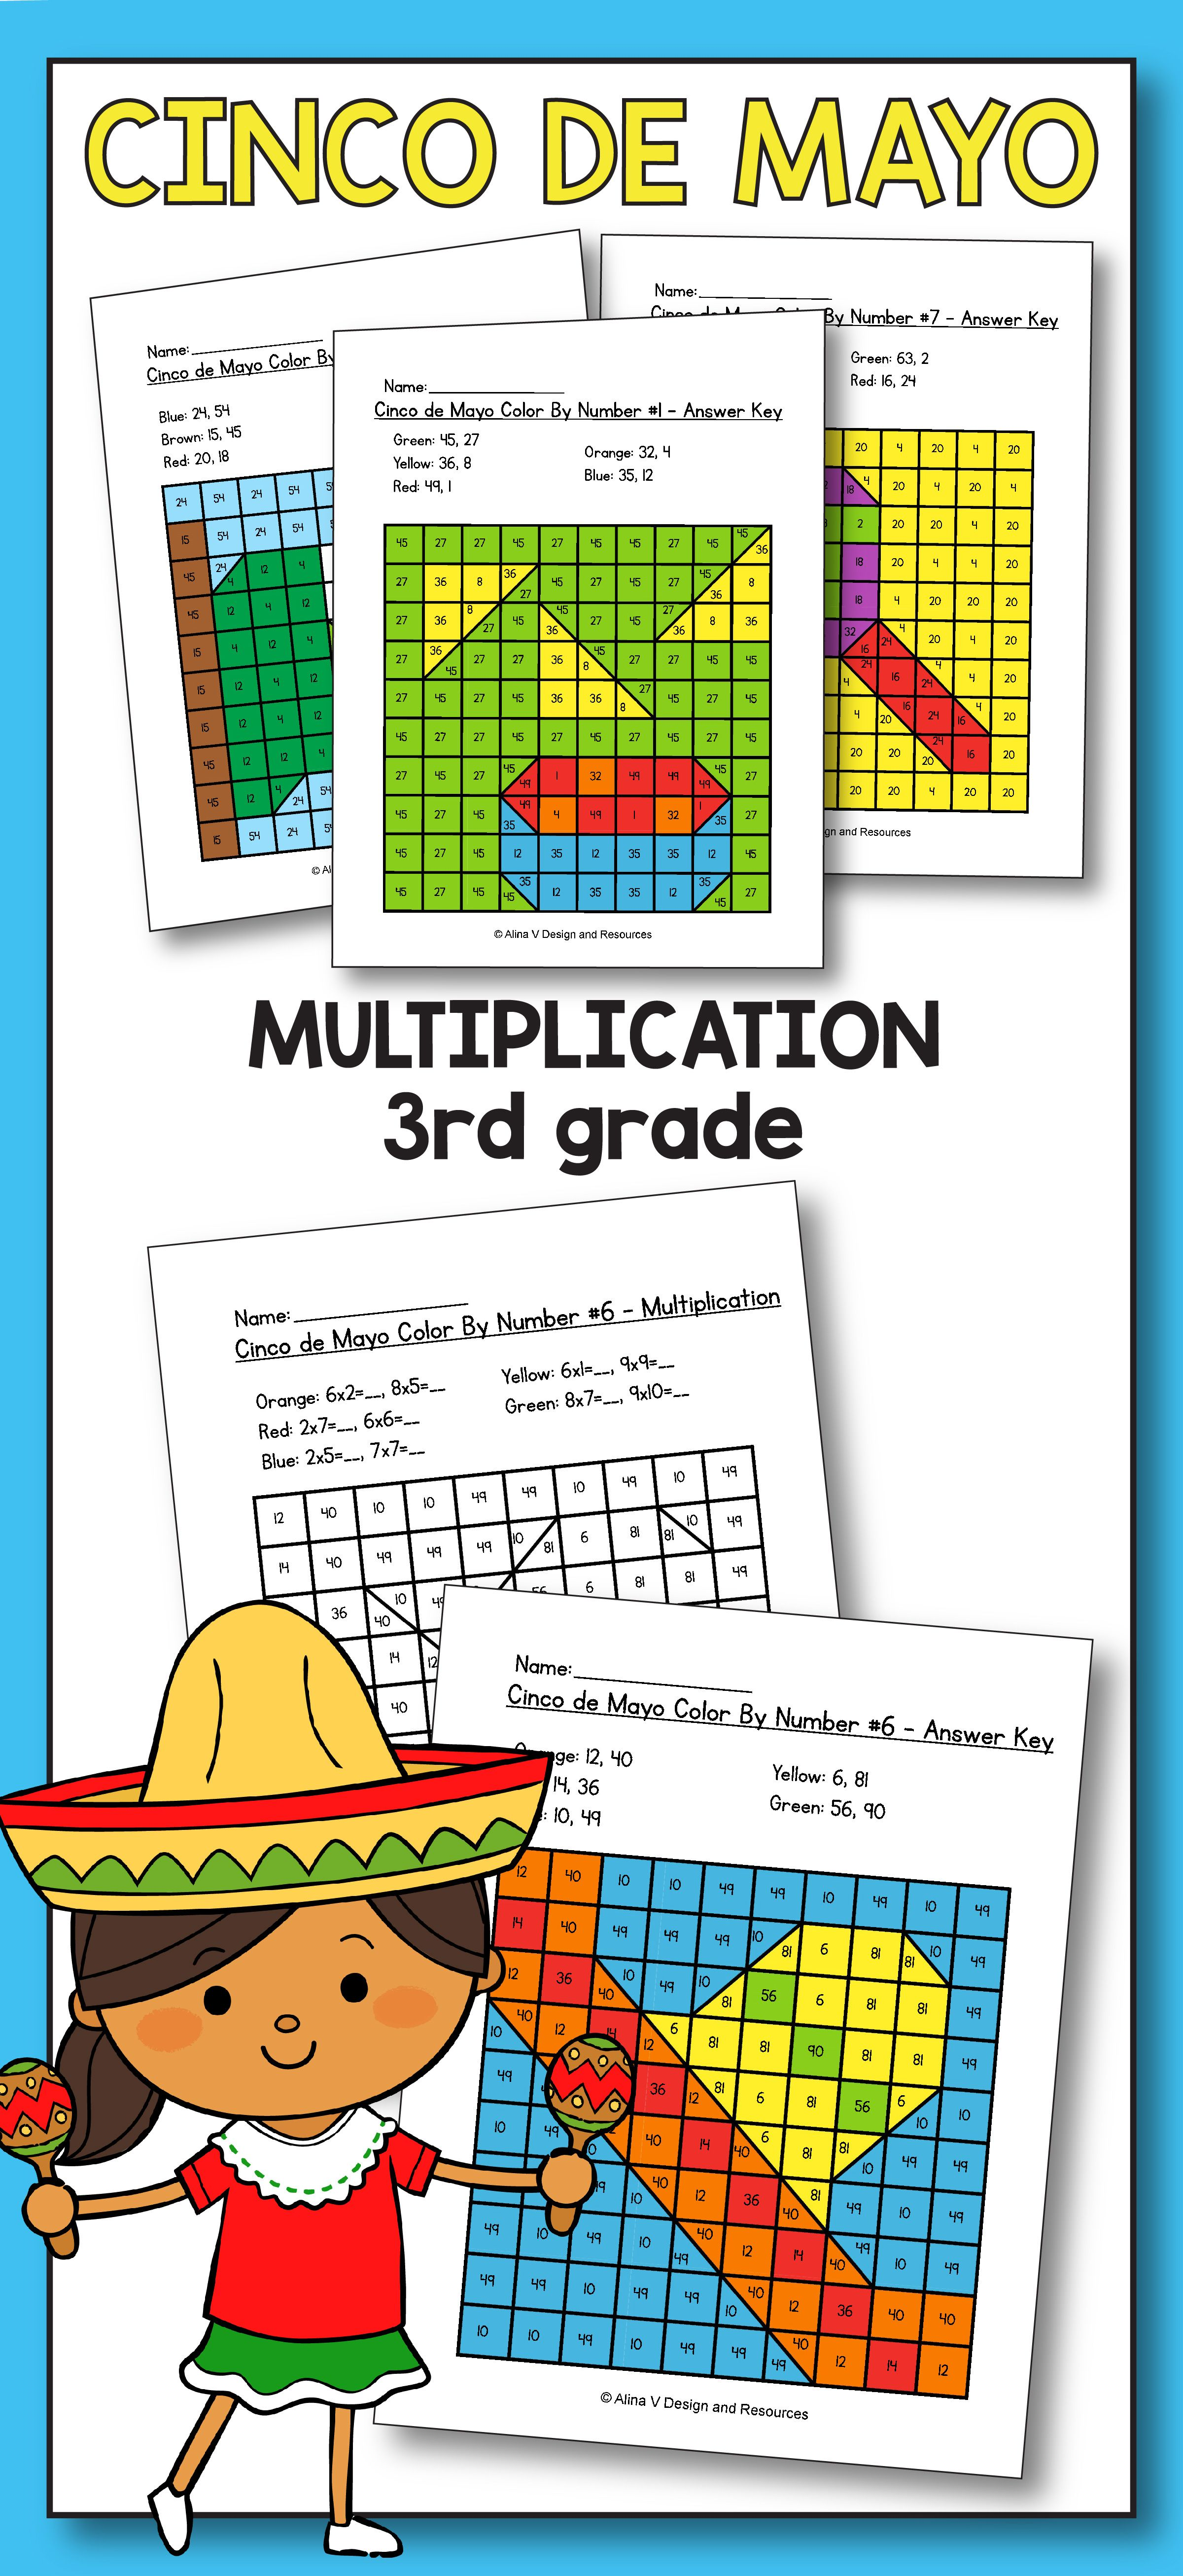 Cinco De Mayo Multiplication Math Worksheets For 3rd Grade Kids Is Fun With These Hundreds Chart Print Elementary Math Lessons Resource Classroom Cinco De Mayo [ 5224 x 2400 Pixel ]